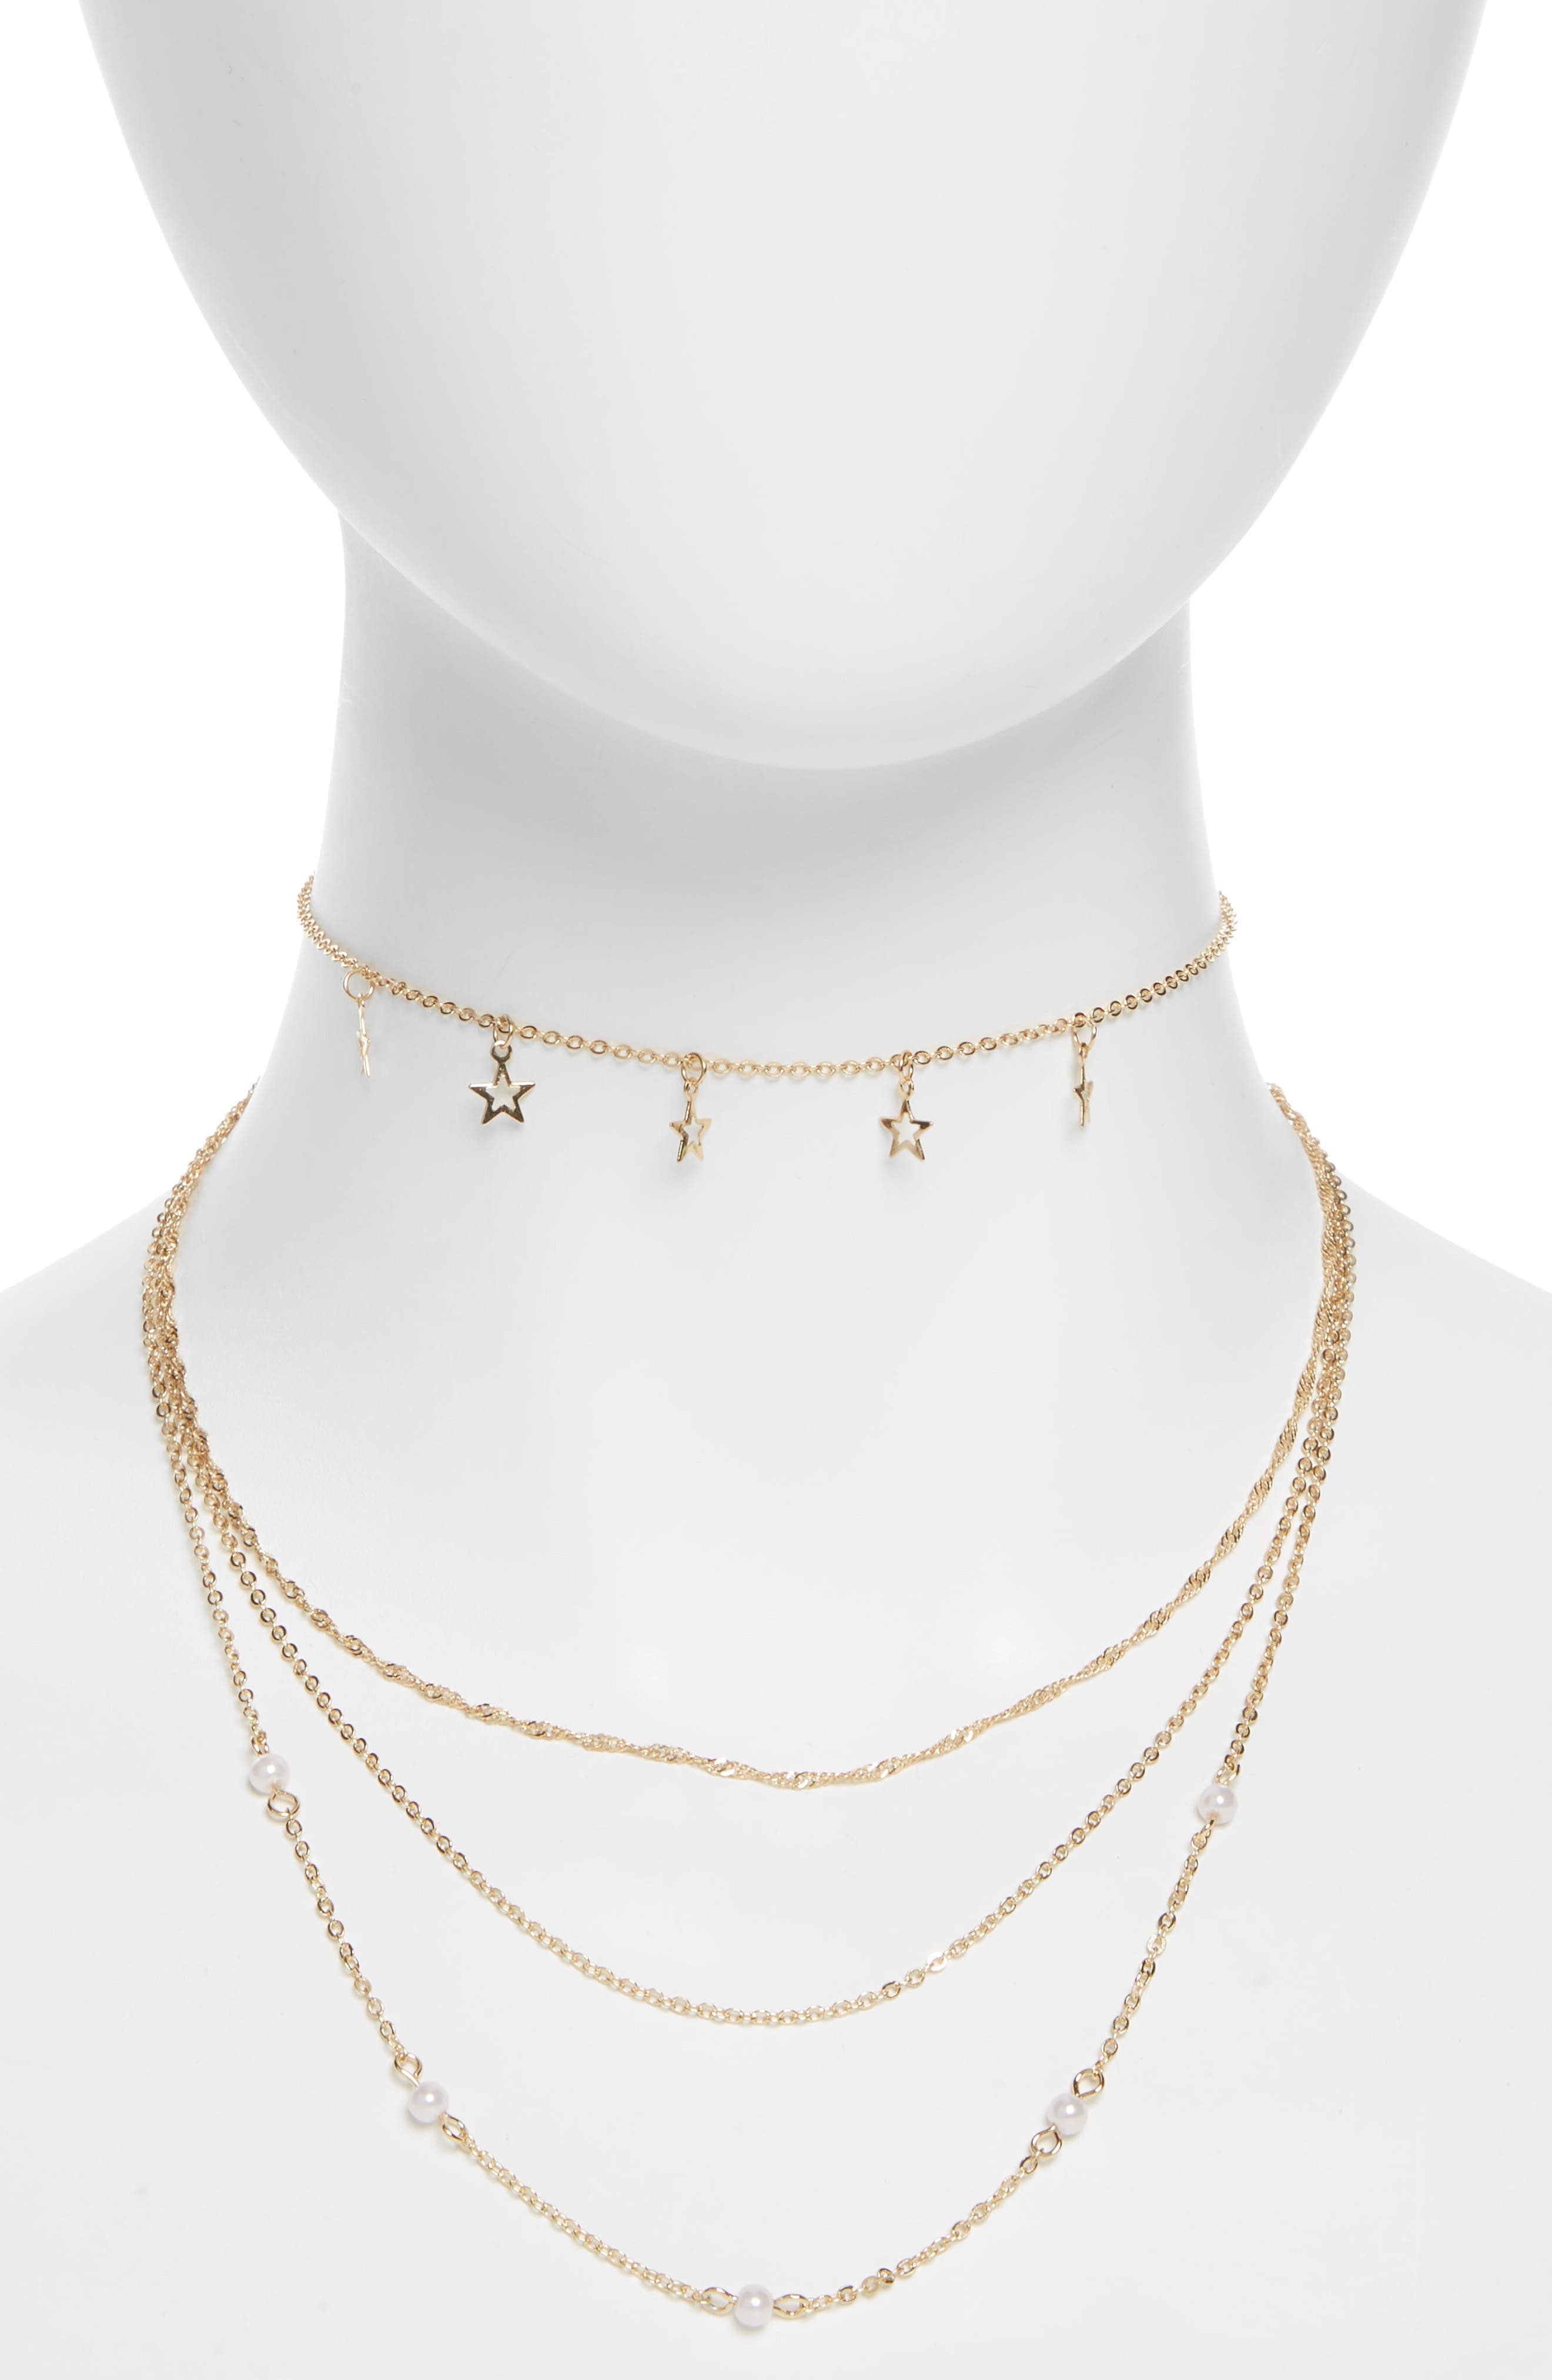 Star & Imitation Pearl Multi Row Necklace,                         Main,                         color, Gold